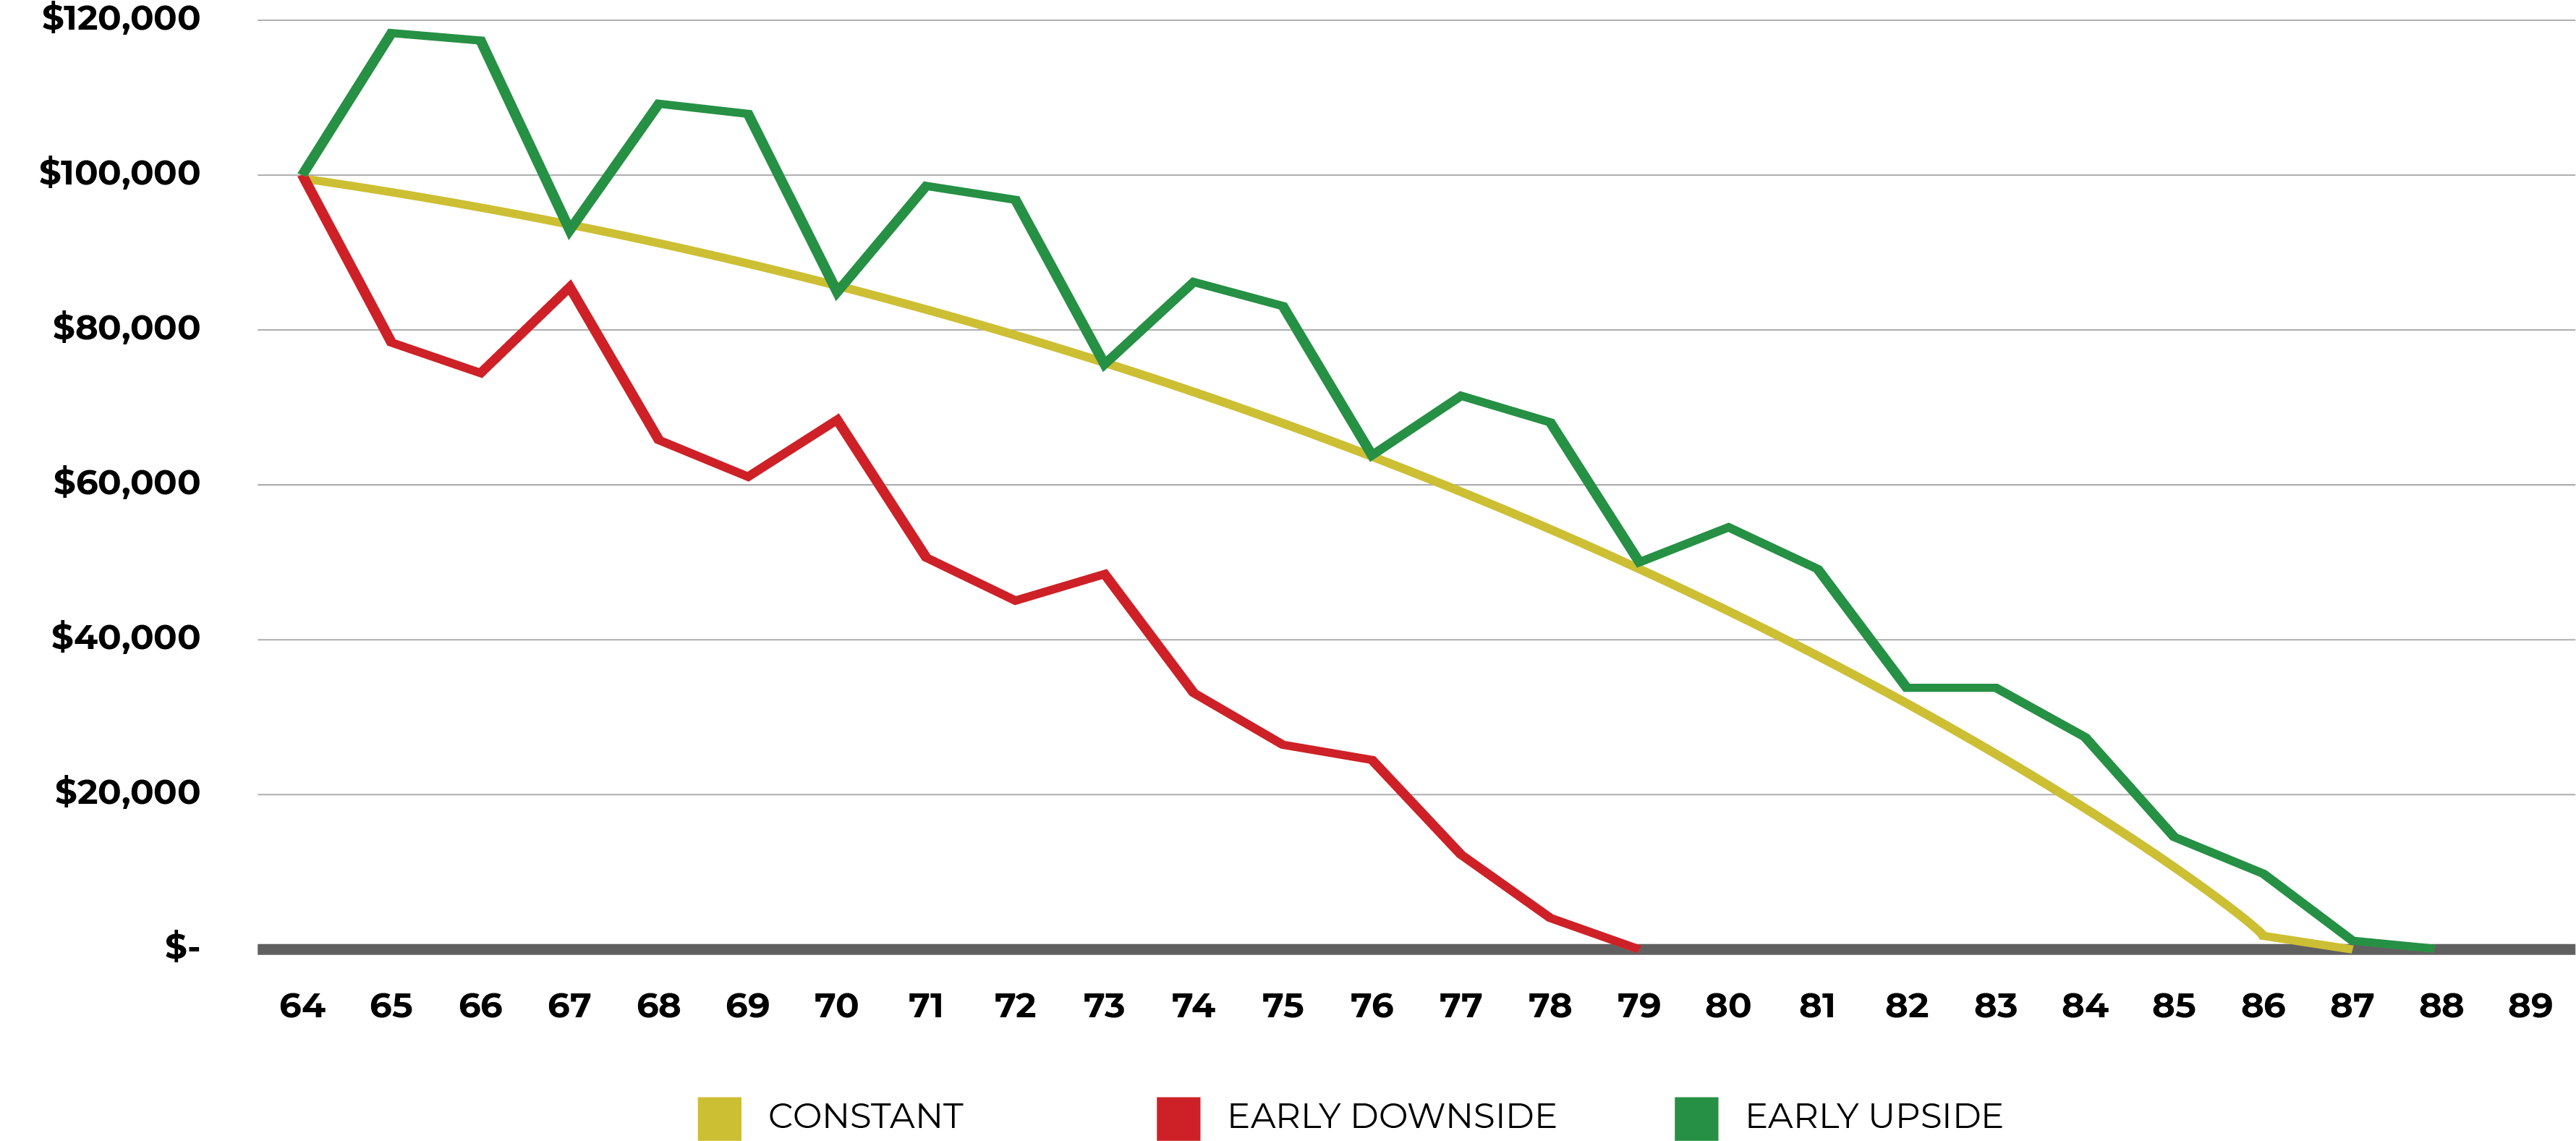 RETIRING DURING A RECESSION GRAPH